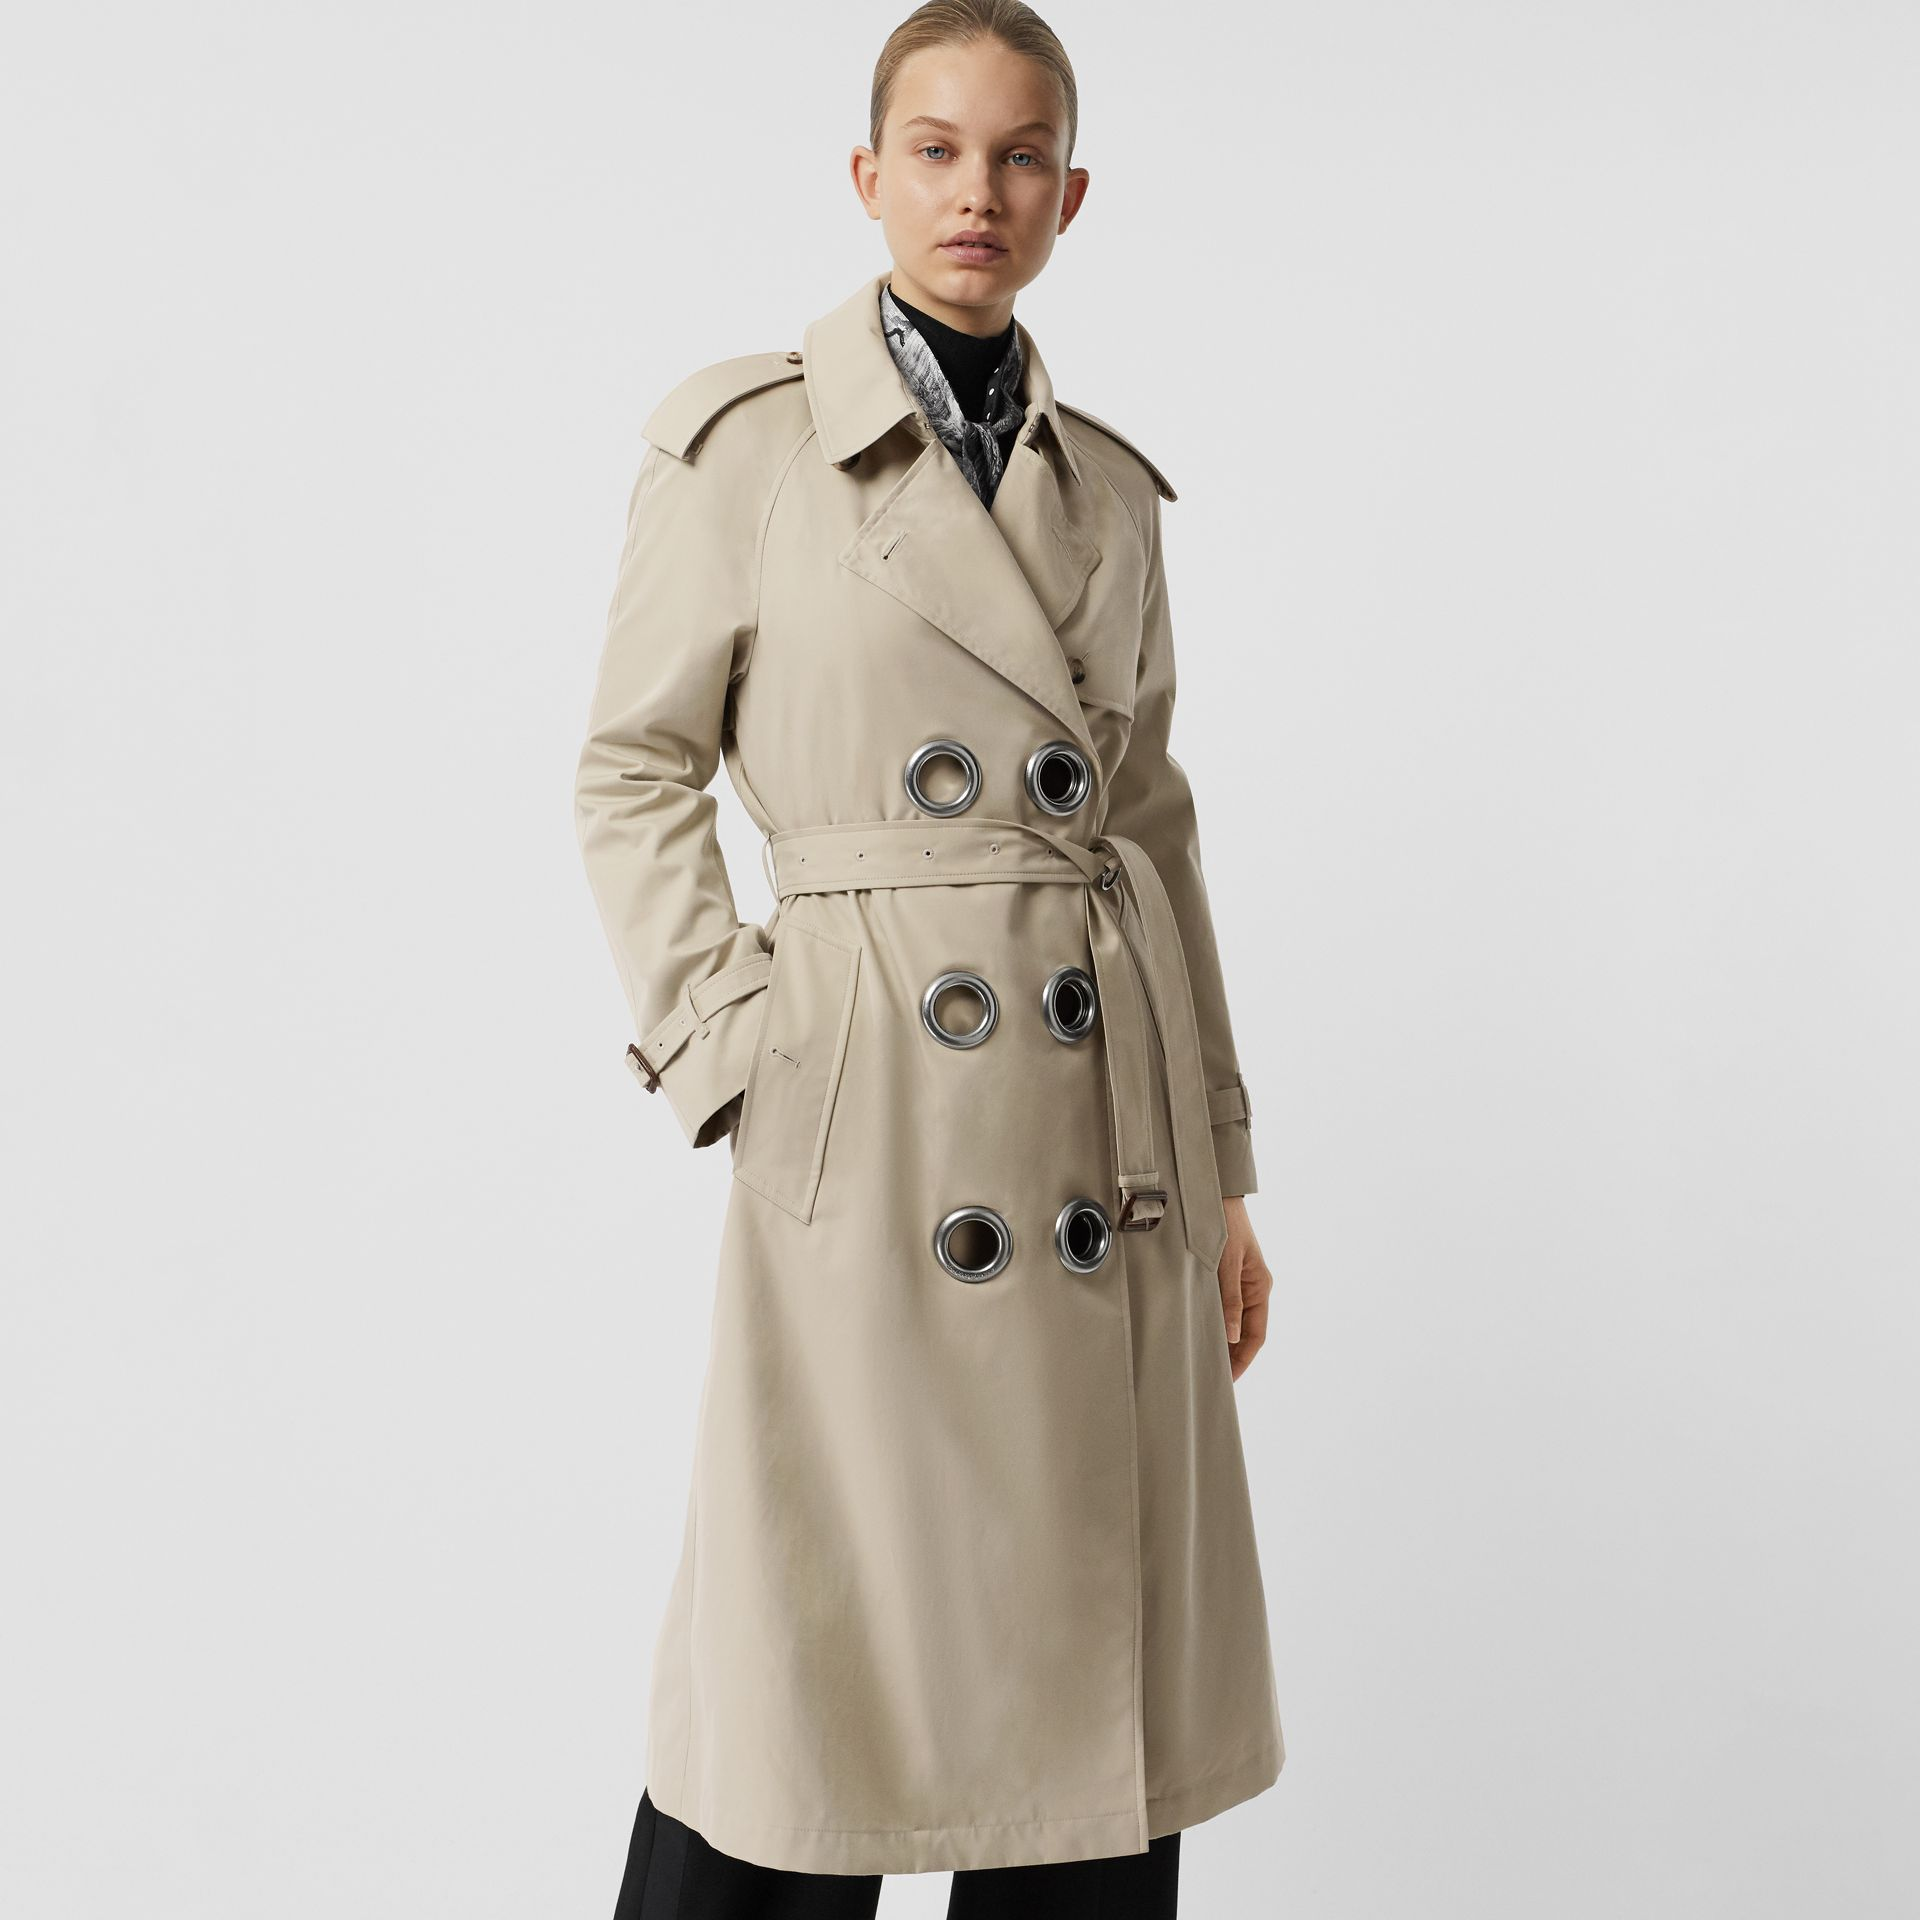 Grommet Detail Cotton Gabardine Trench Coat in Stone - Women | Burberry United Kingdom - gallery image 7